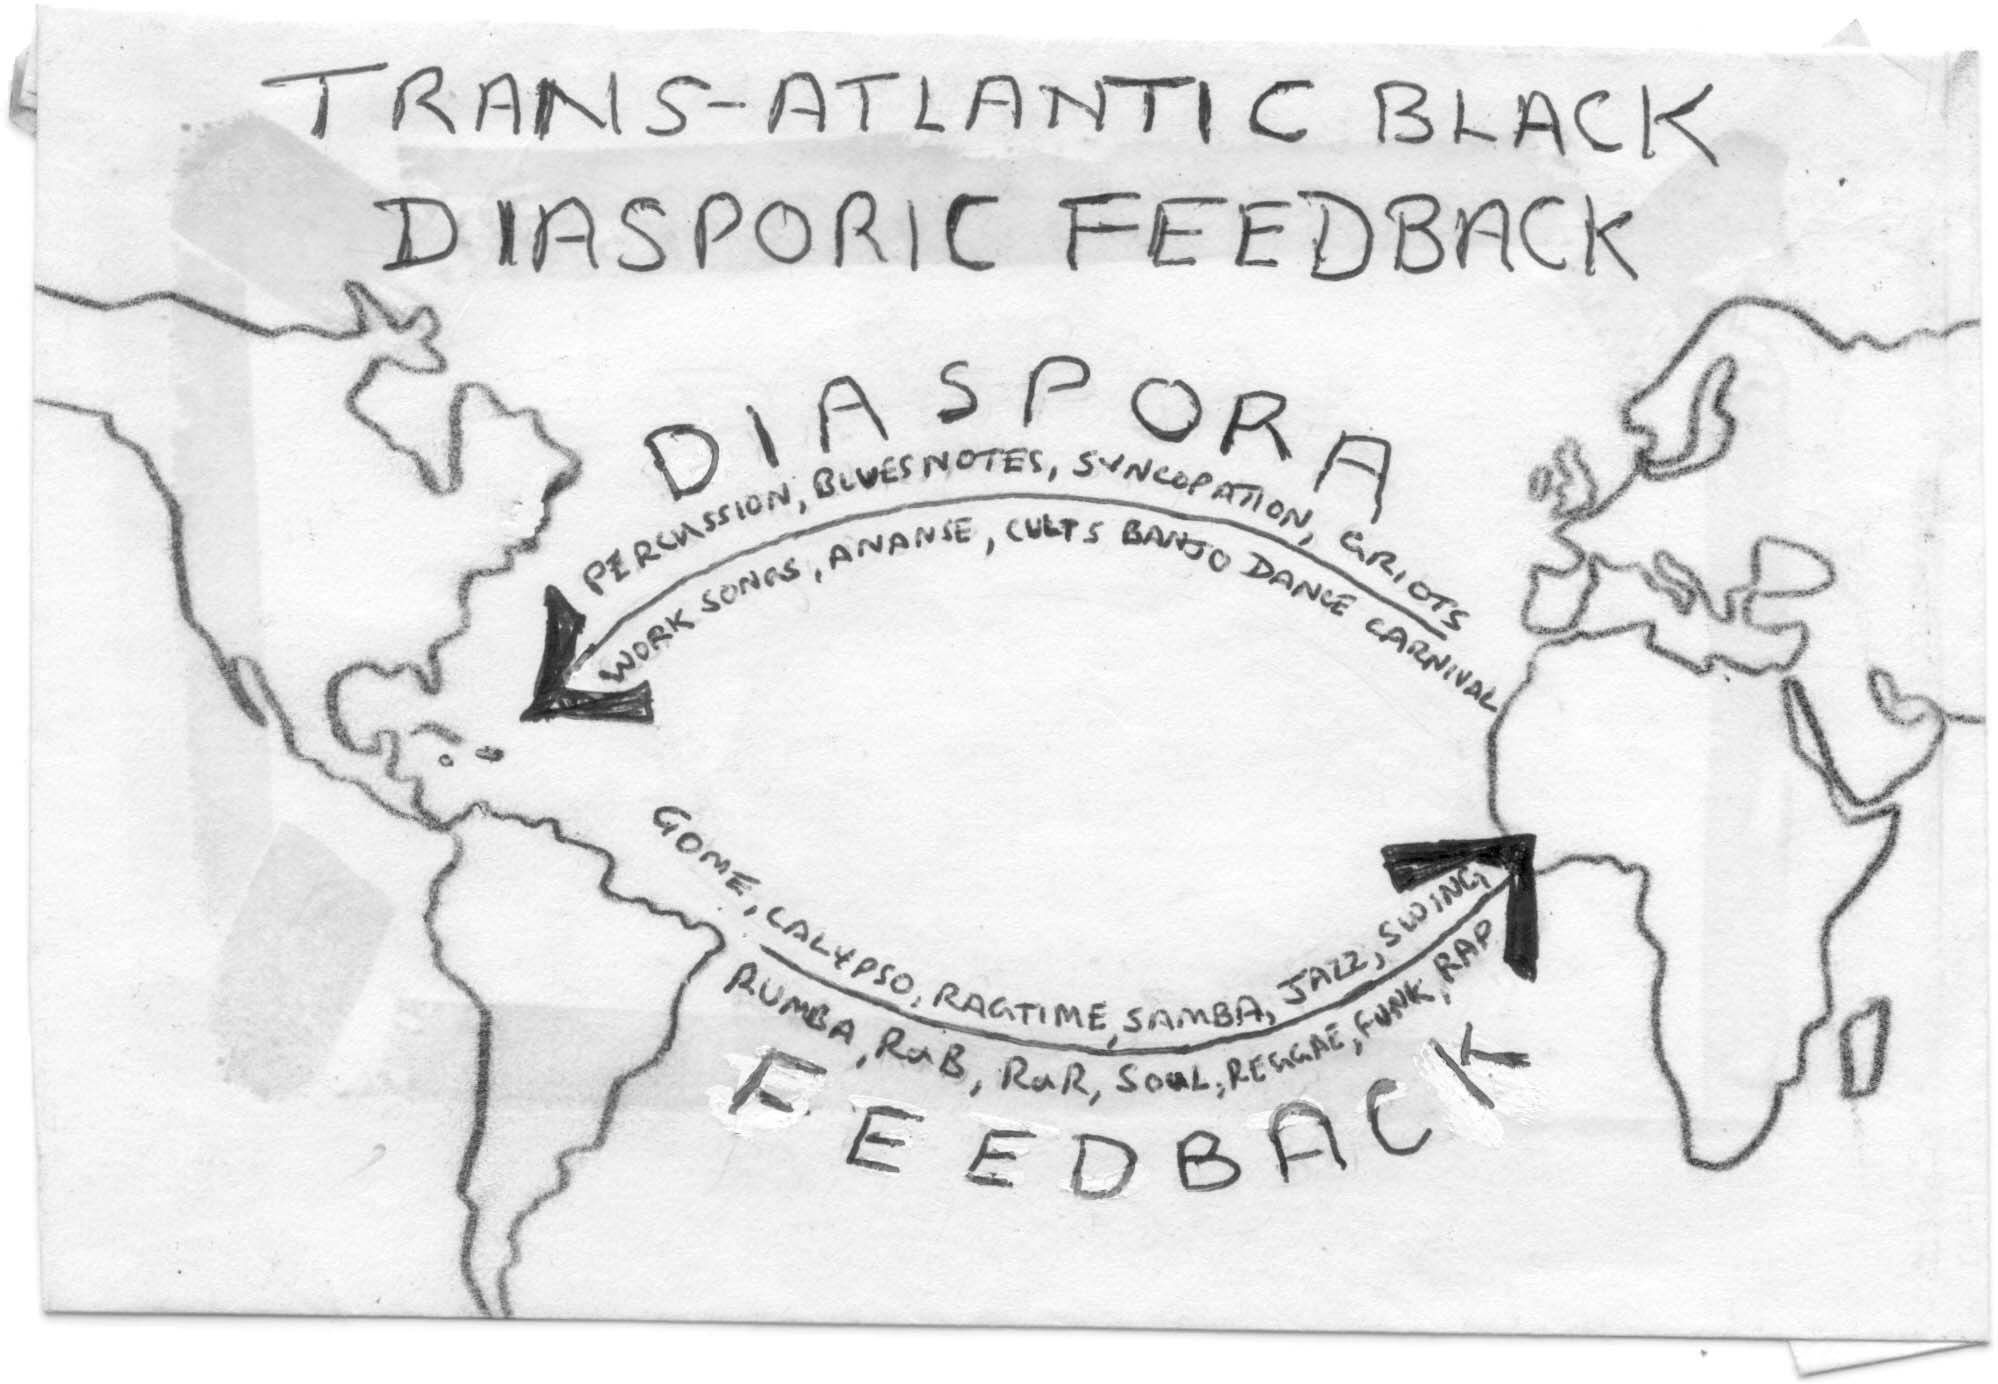 Translantic music cycle diagram African and the Atlantic